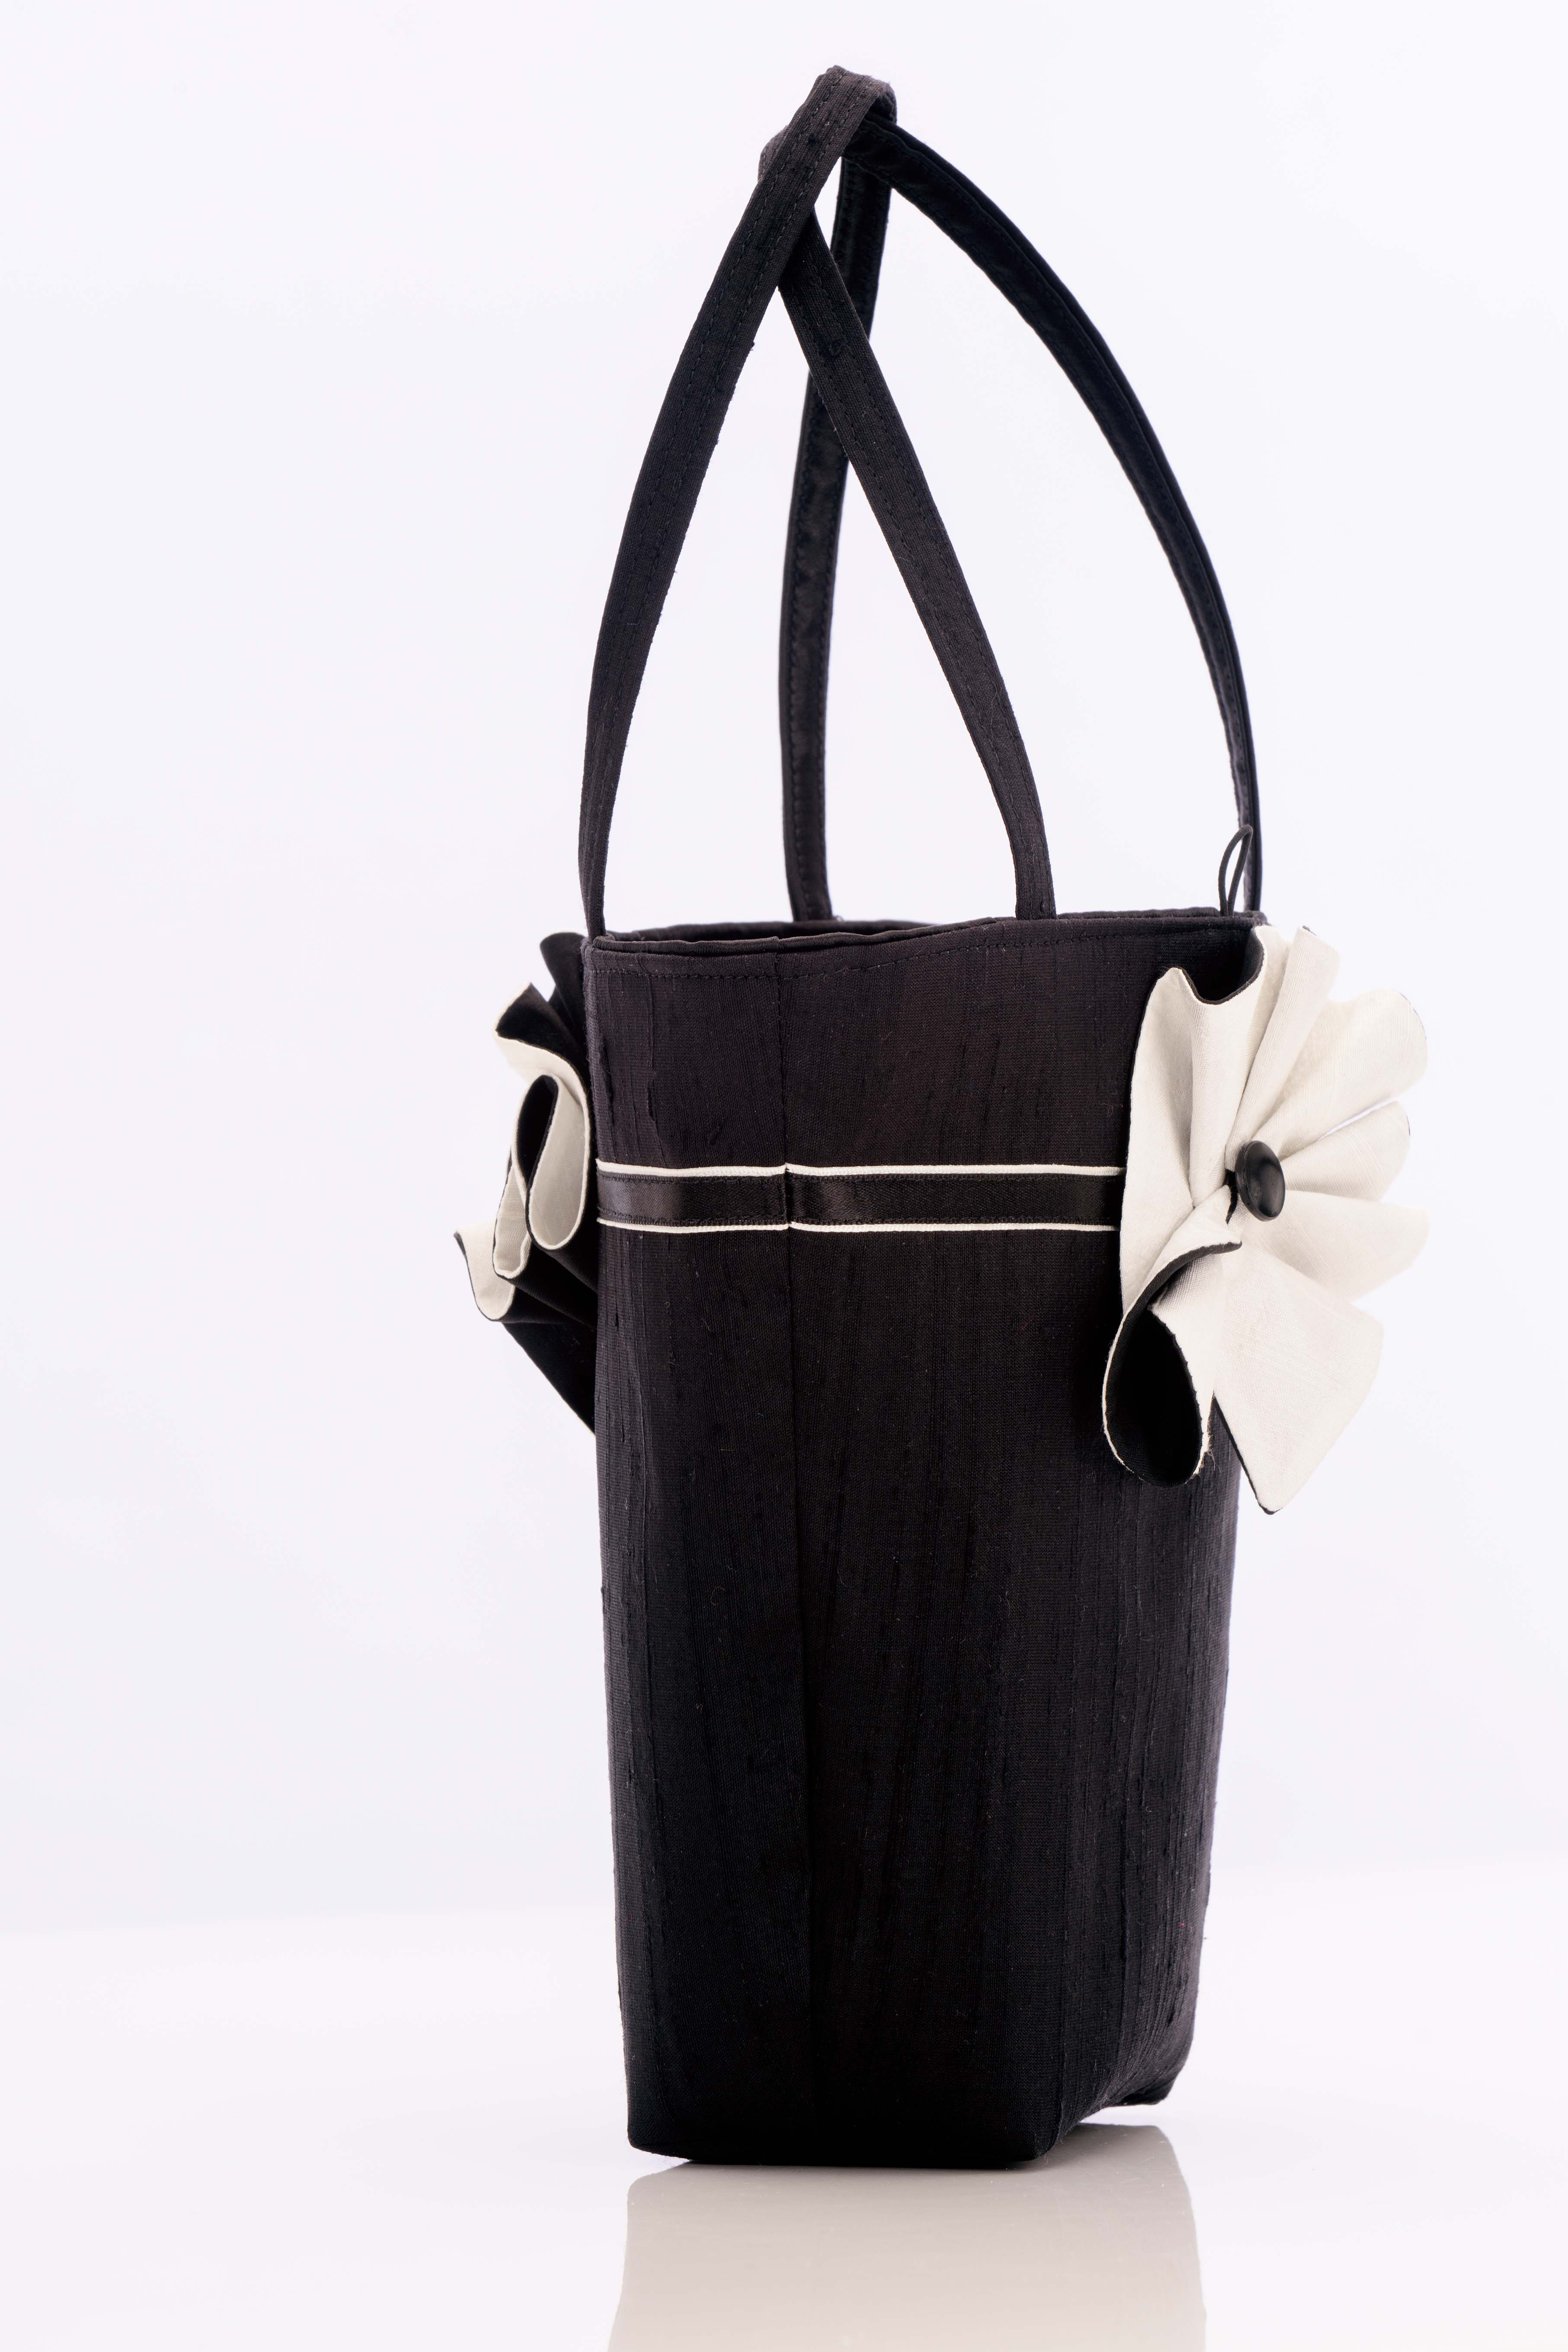 Black silk handbag with black and white swirl trim